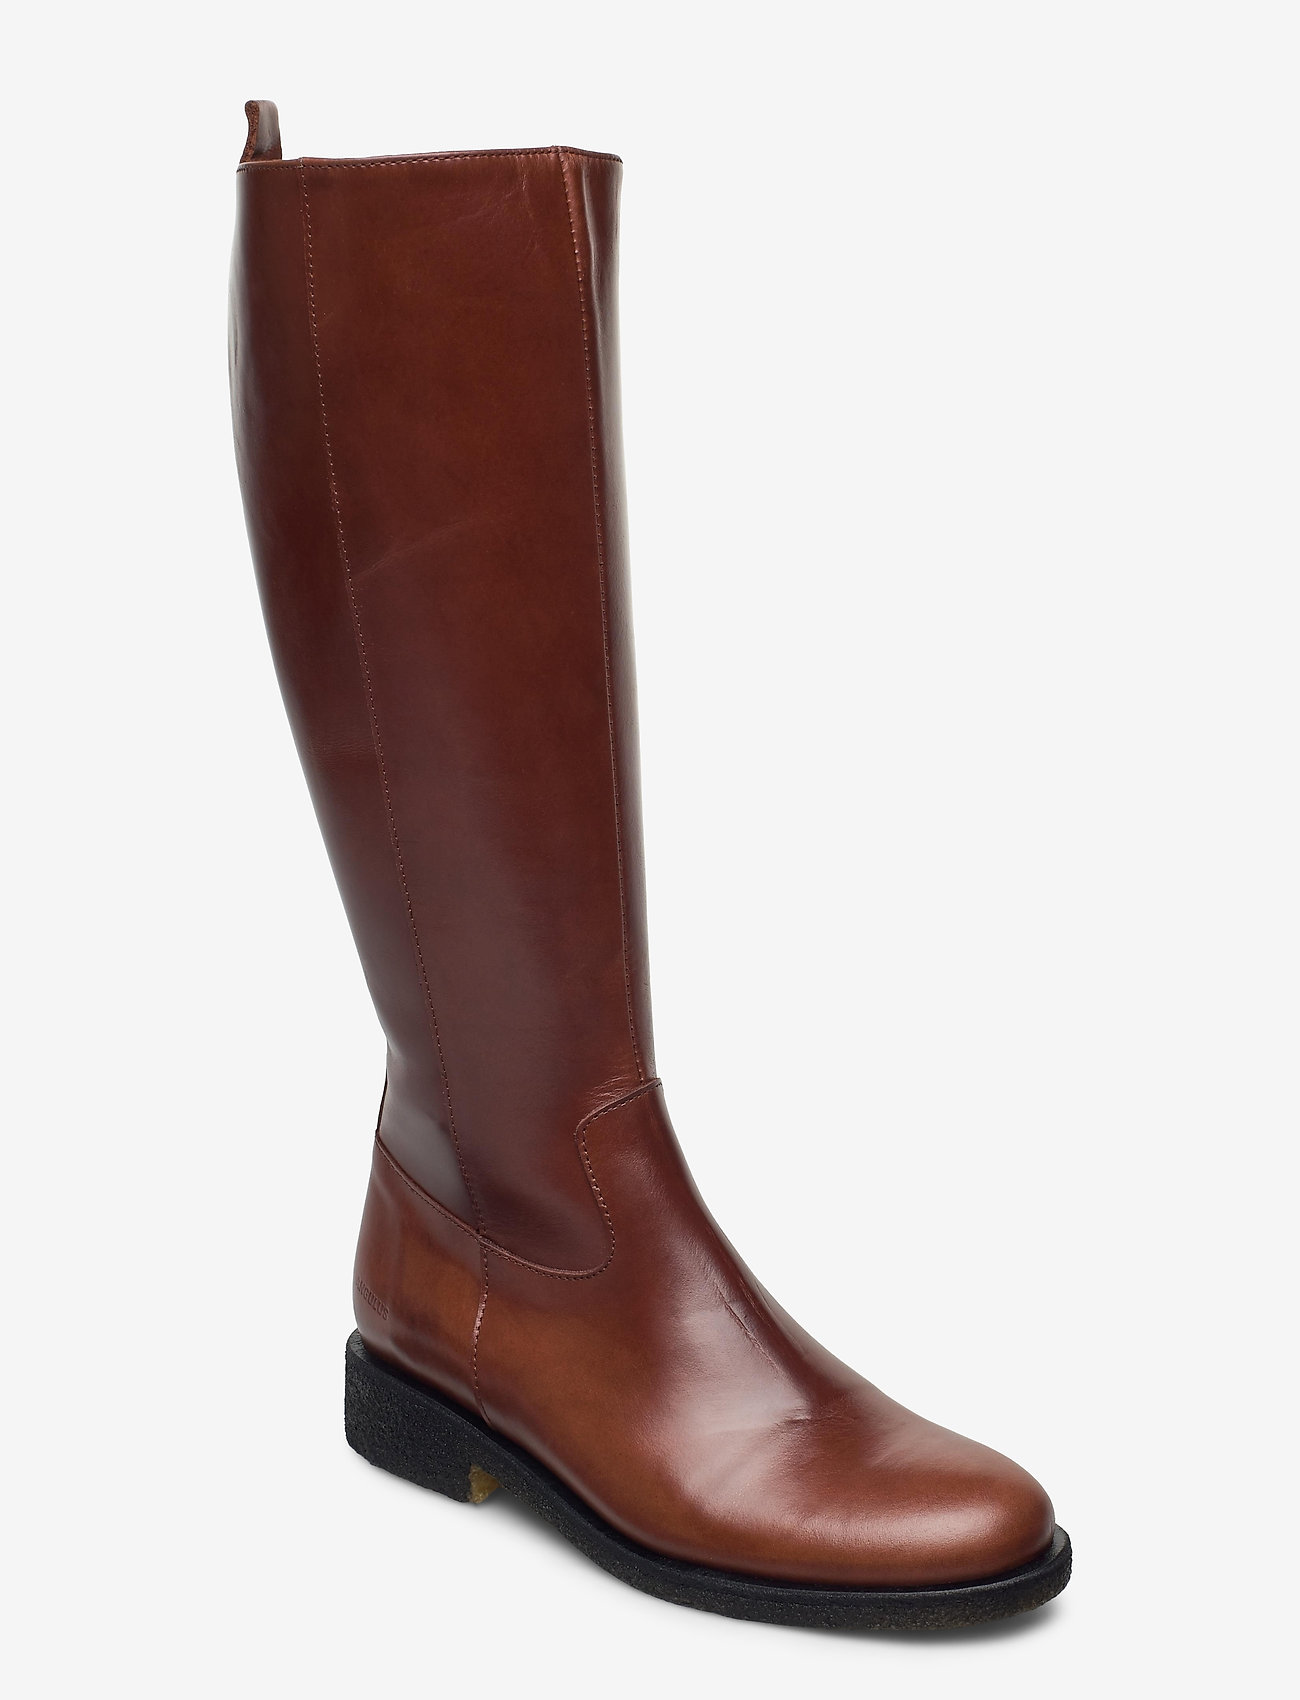 ANGULUS - Long boot - bottes hautes - 1837/002 brown/dark brown - 0